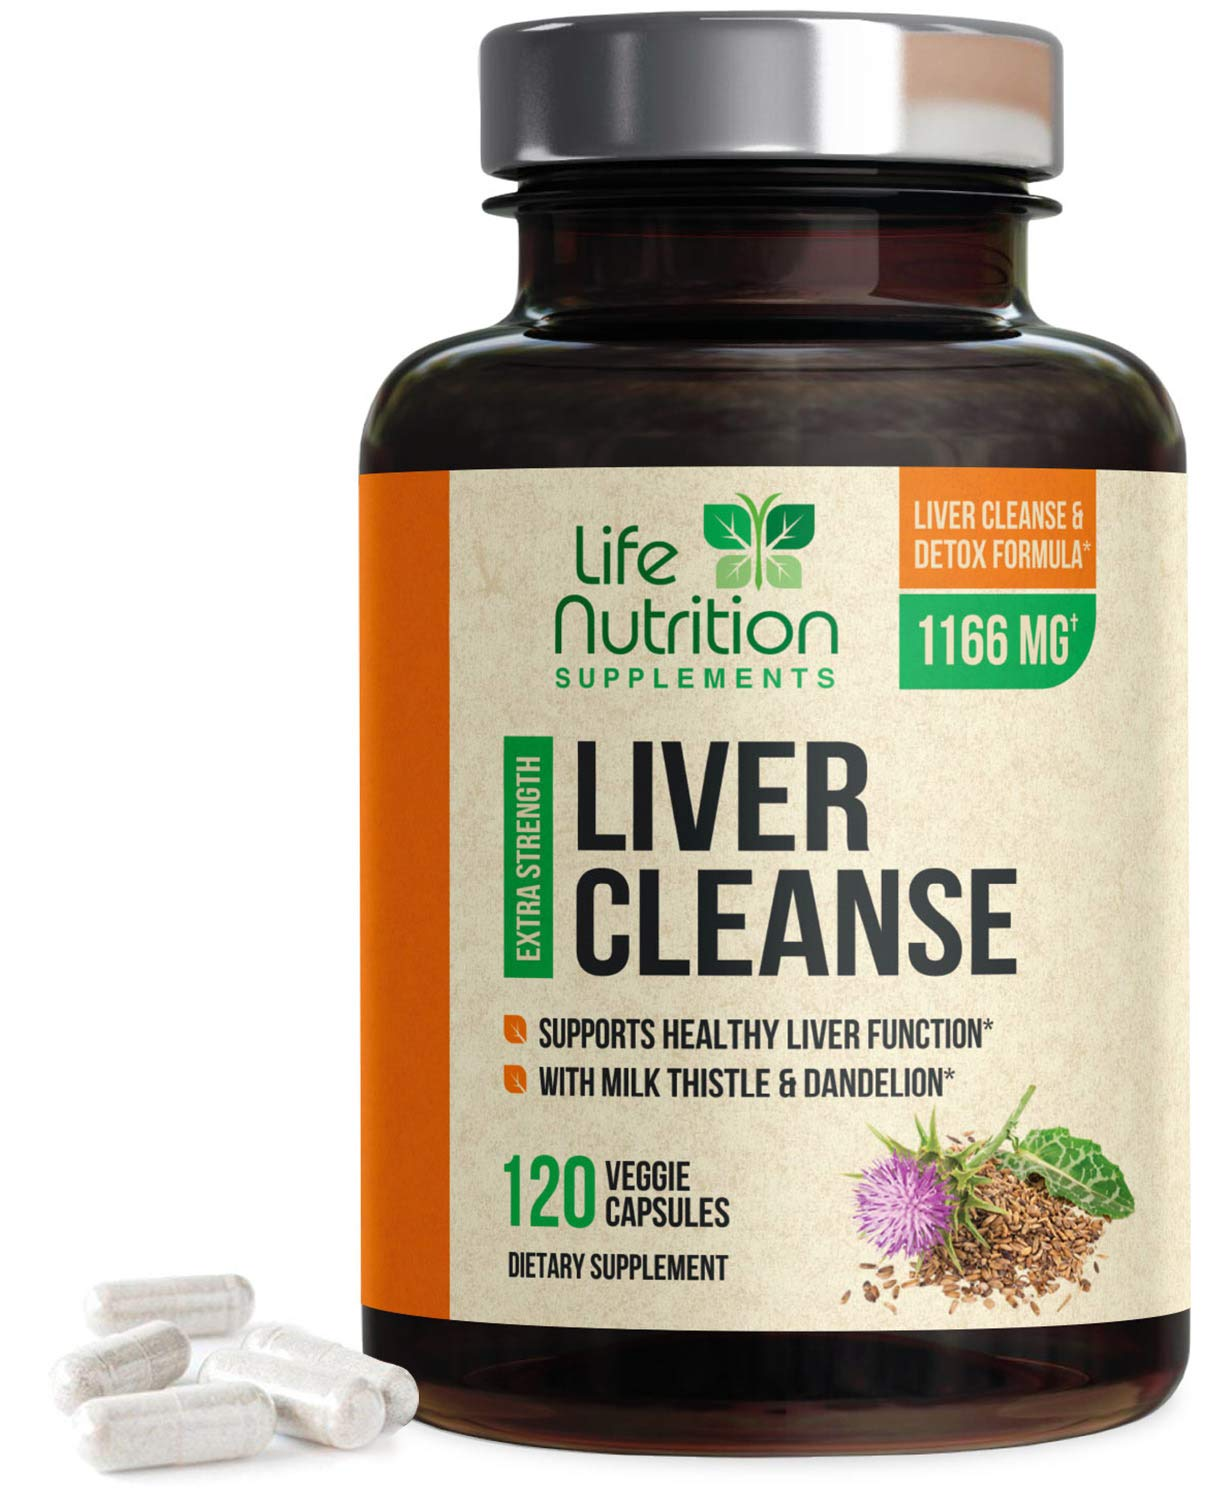 Liver Cleanse Detox & Repair Formula 1166mg - Highest Potency 22 Herbs, Made in USA, Milk Thistle Extract, Silymarin, Beet, Artichoke, Dandelion, Chicory, Support Supplement - 120 Capsules by Life Nutrition